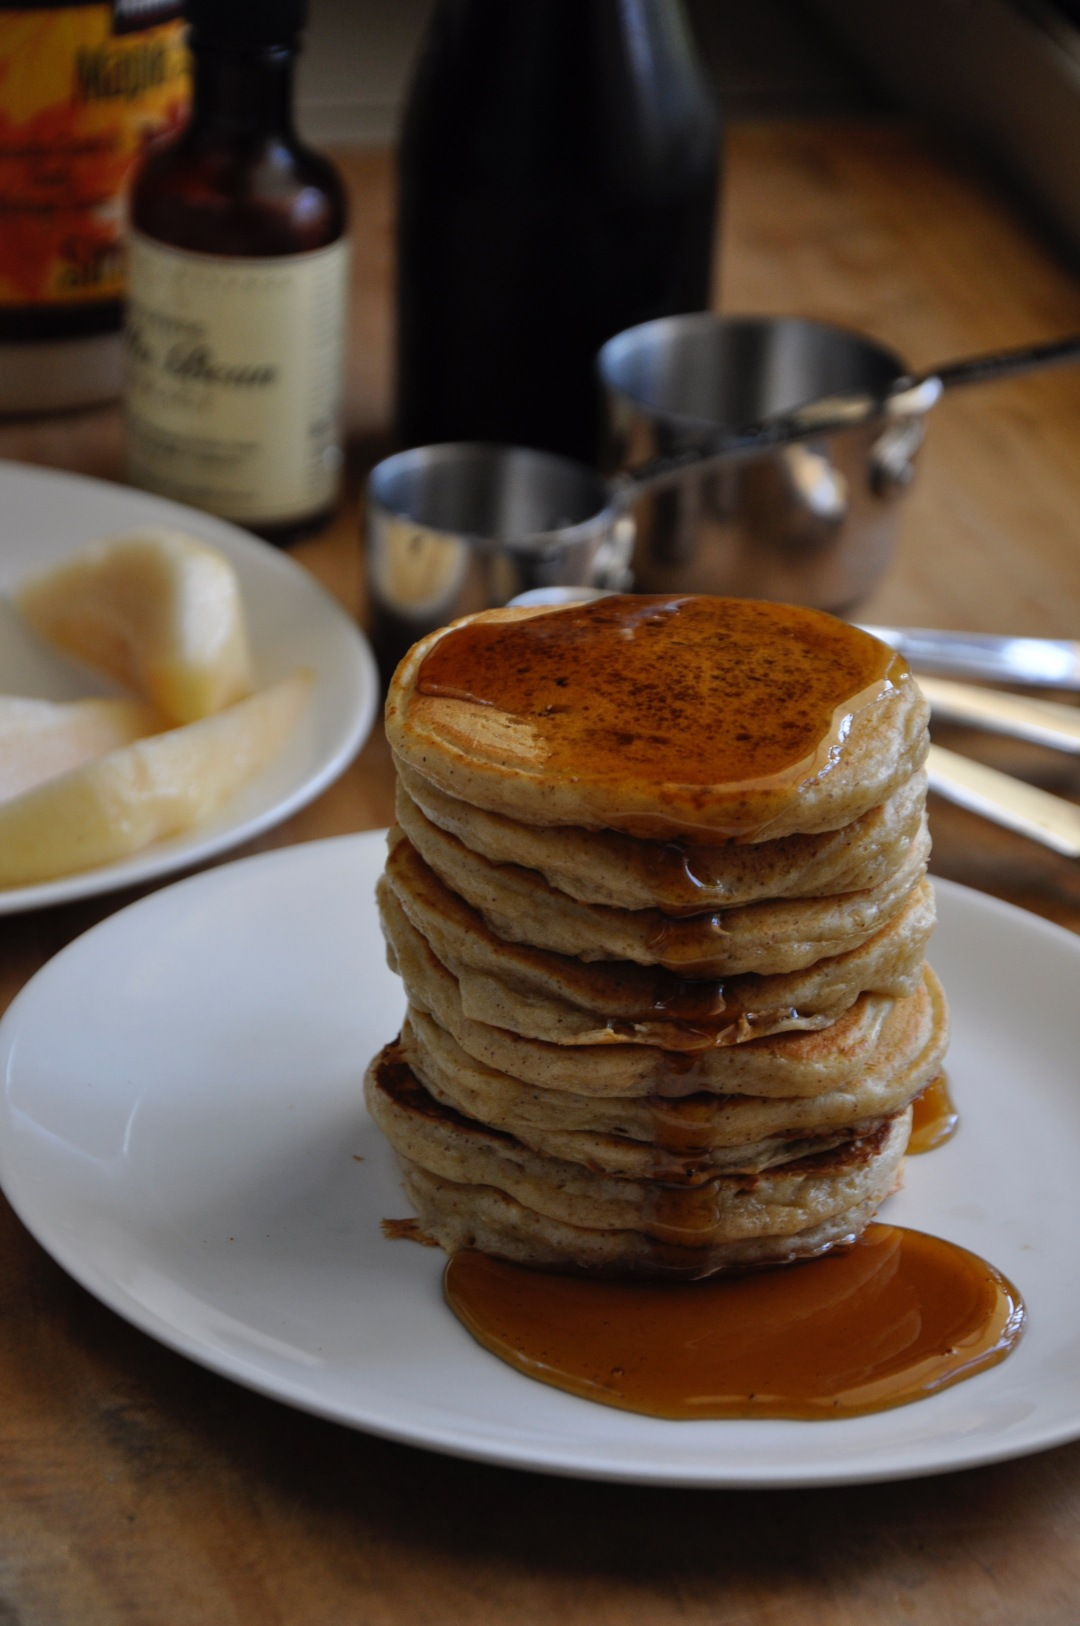 maple-syrup-dripping-over-pancakes